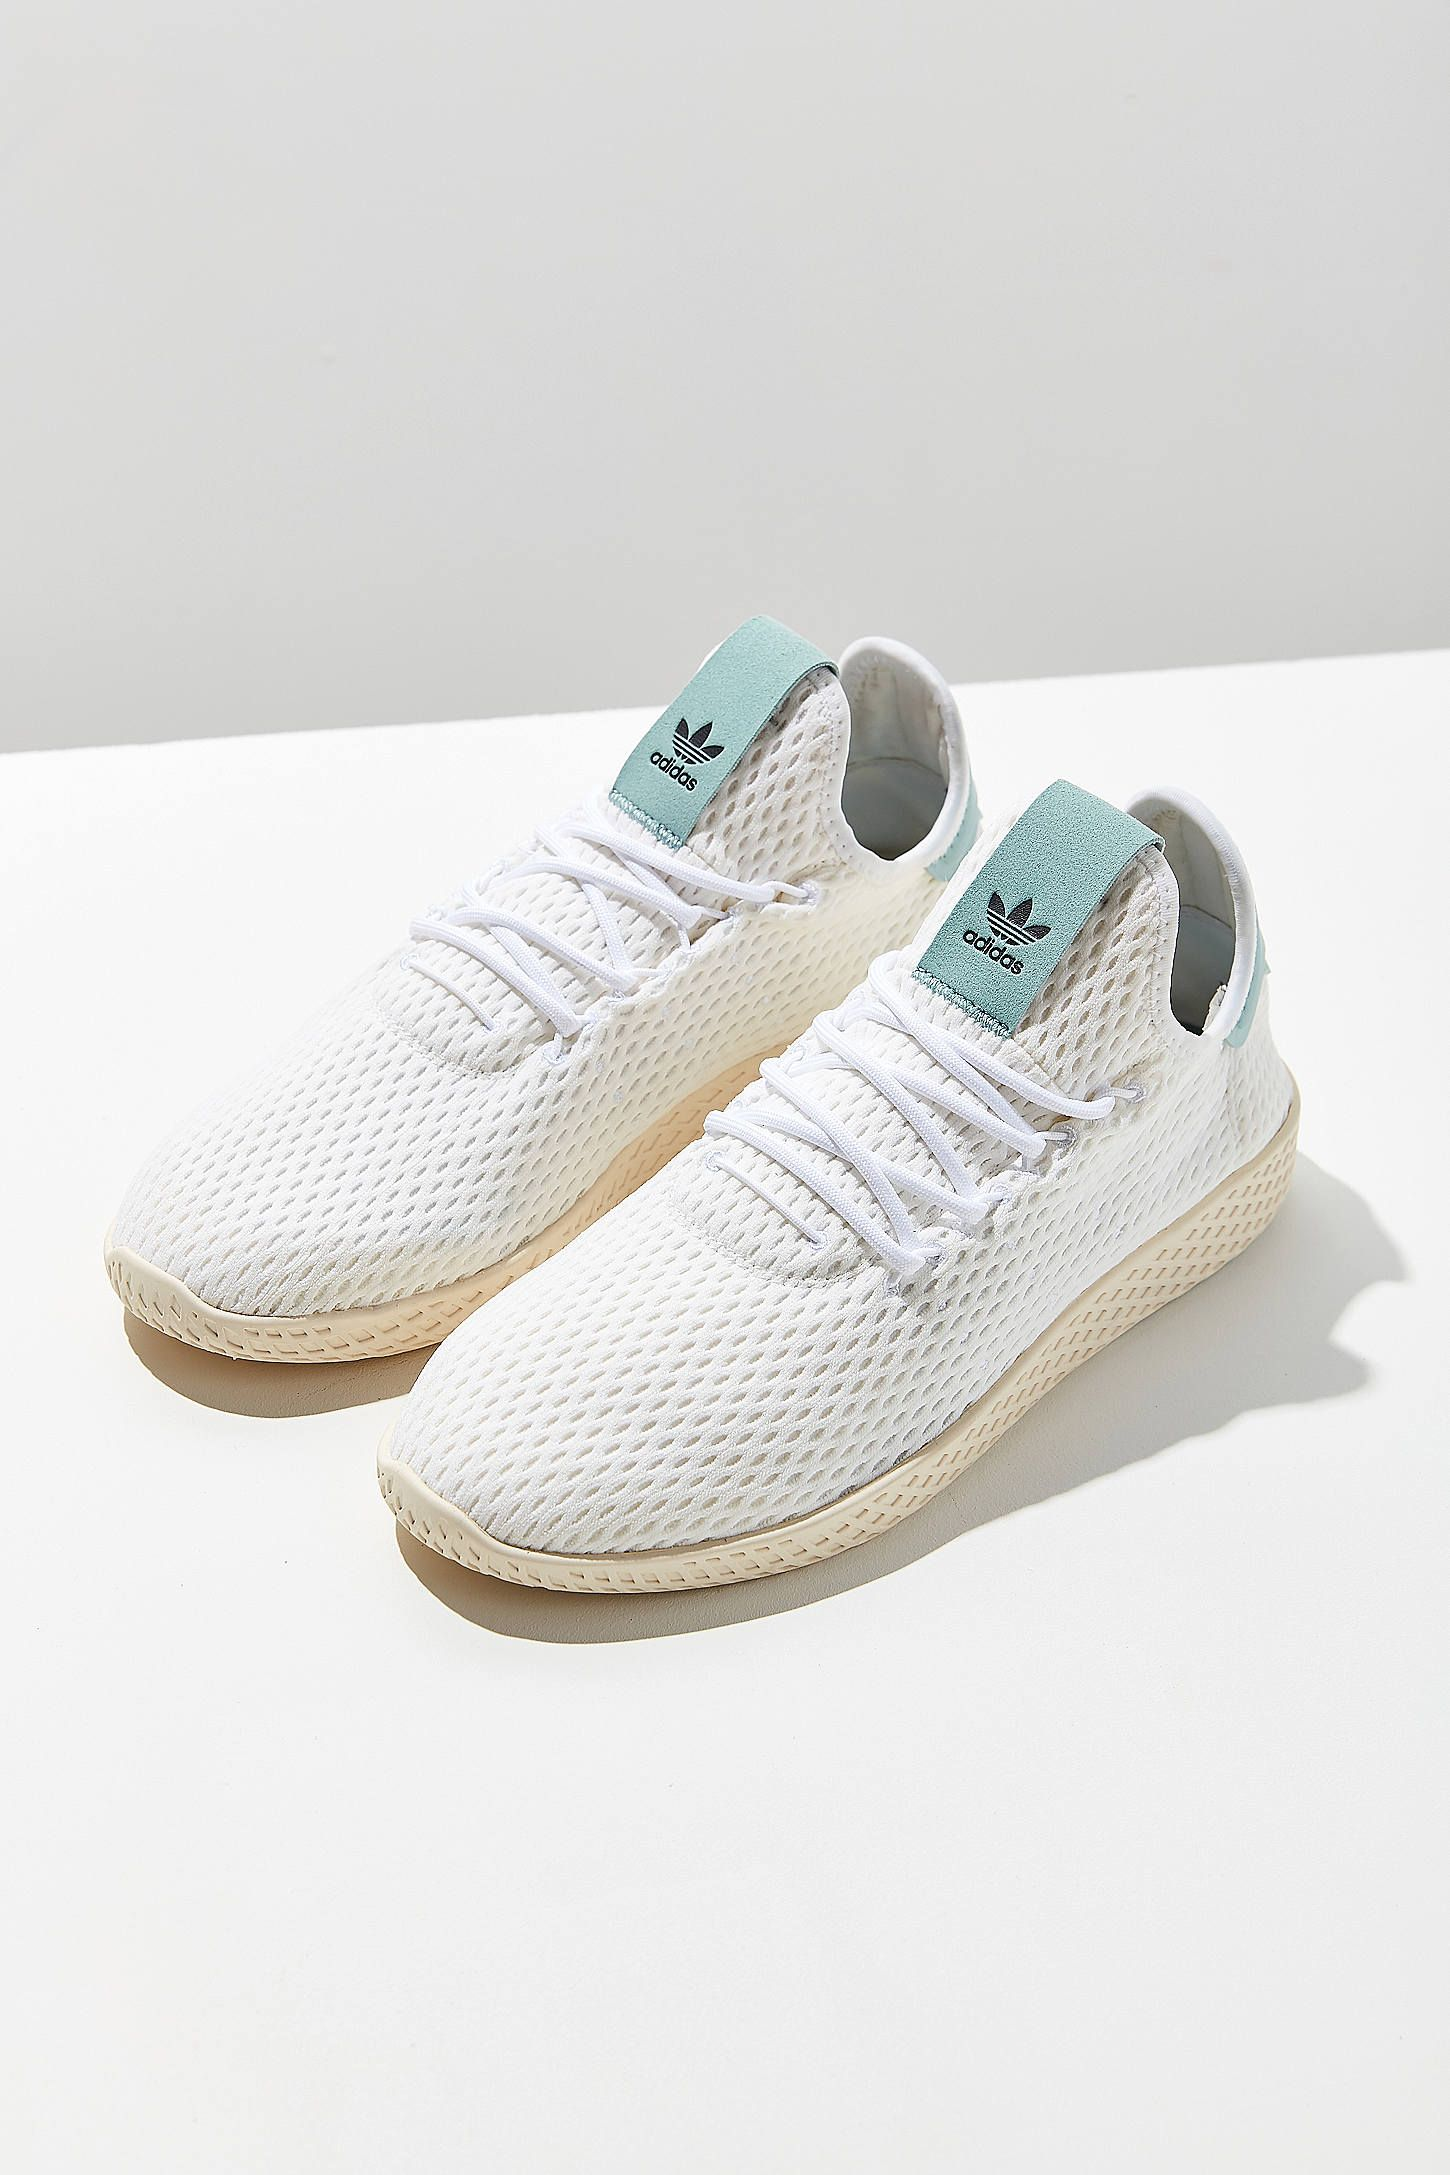 Shop adidas Originals X Pharrell Williams Tennis Hu Sneaker at Urban  Outfitters today. We carry all the latest styles cab080079f9b